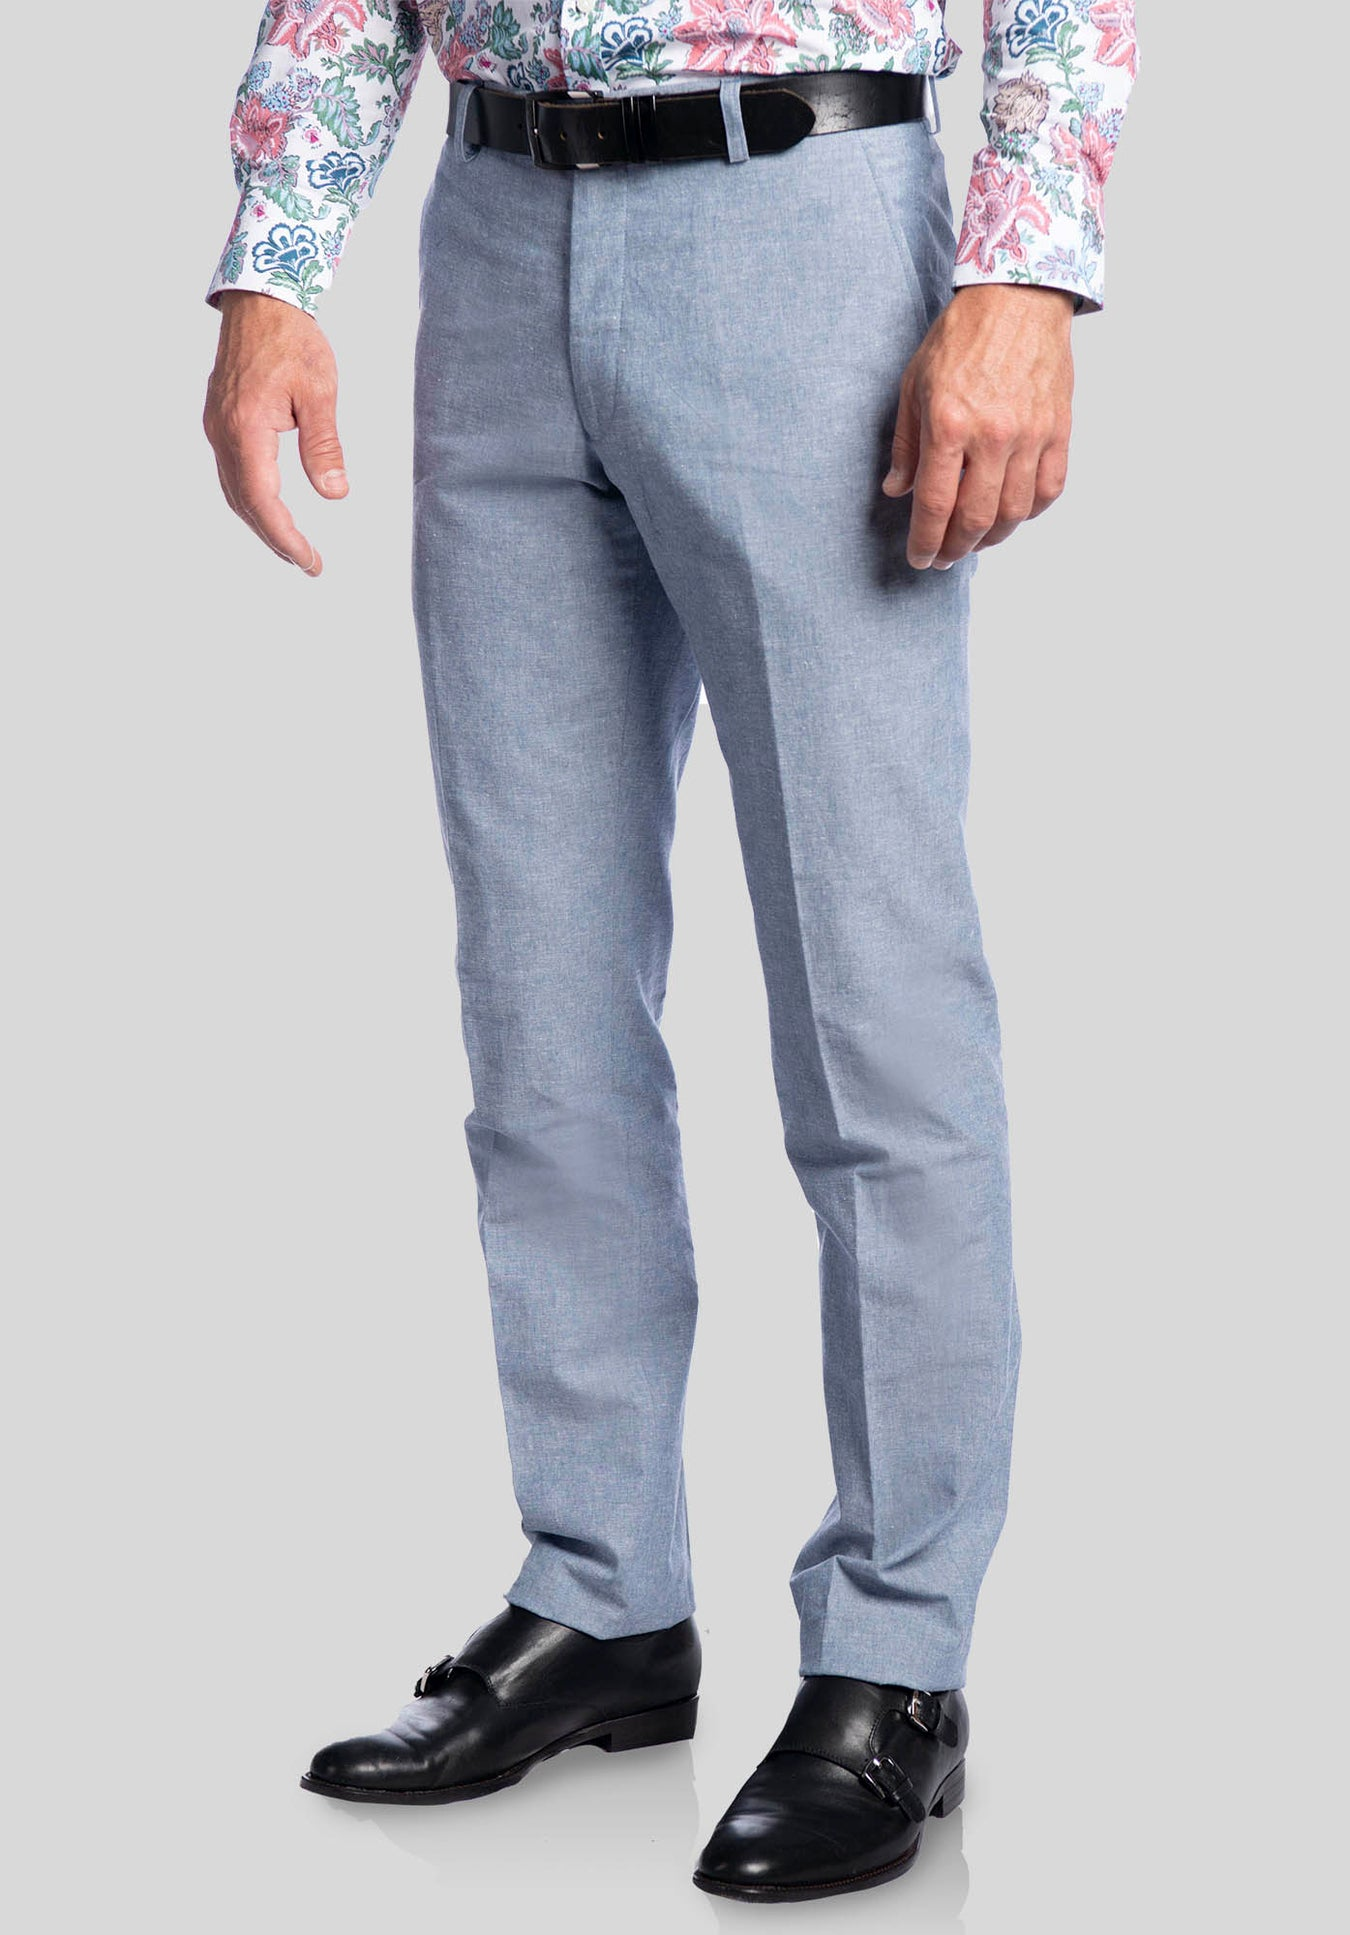 JOE TROUSER FUK565 - Blue